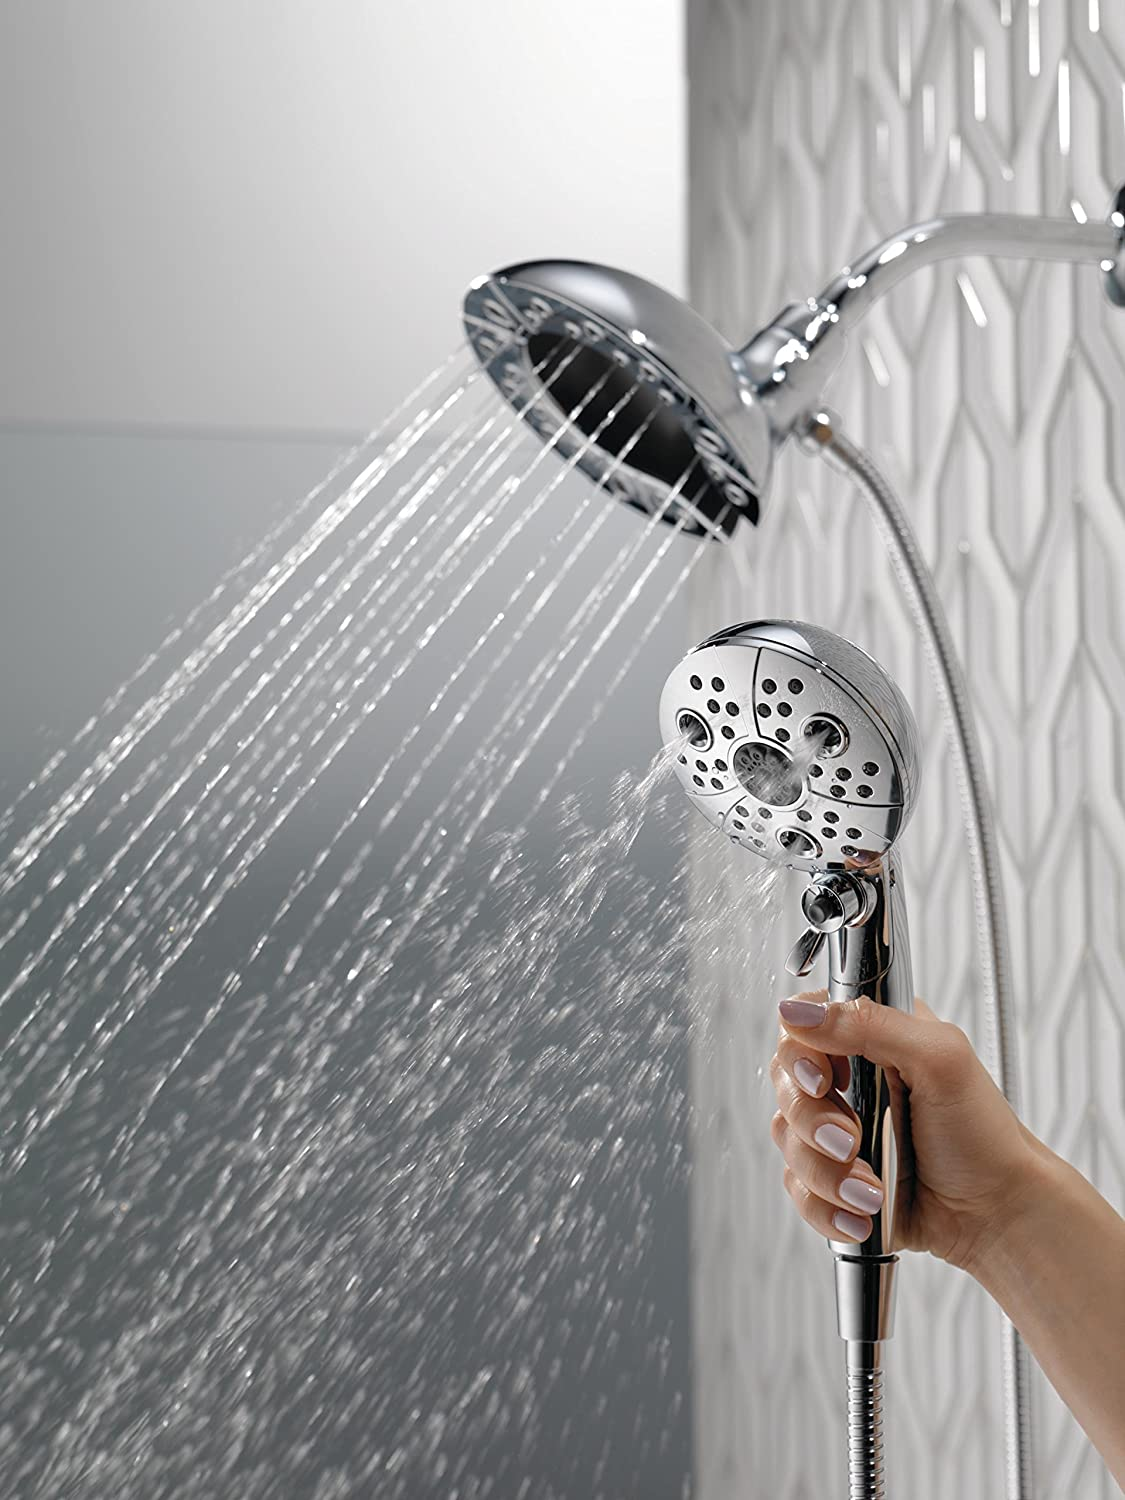 Delta Faucet 5-Spray H2Okinetic In2ition 2-in-1 Dual Hand Held Shower Head with Hose and Magnetic Docking, Chrome 58480-PK - -